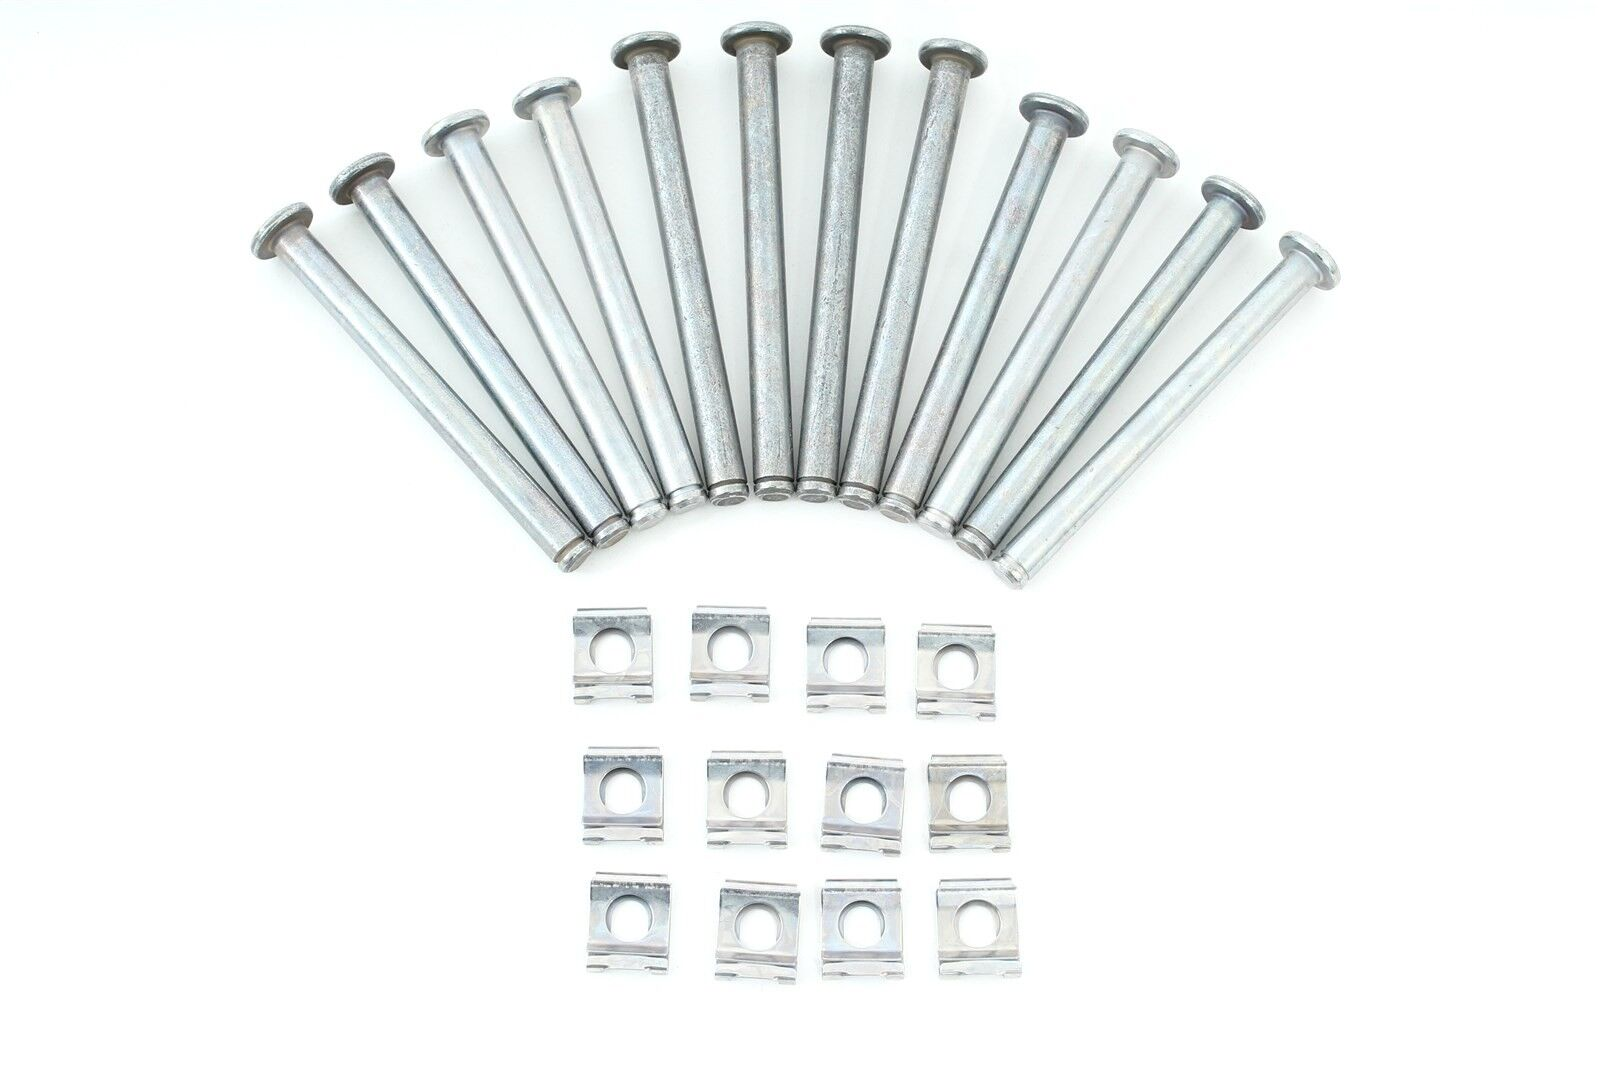 freightliner century fld sterling 9500 series radiator pin and clip set